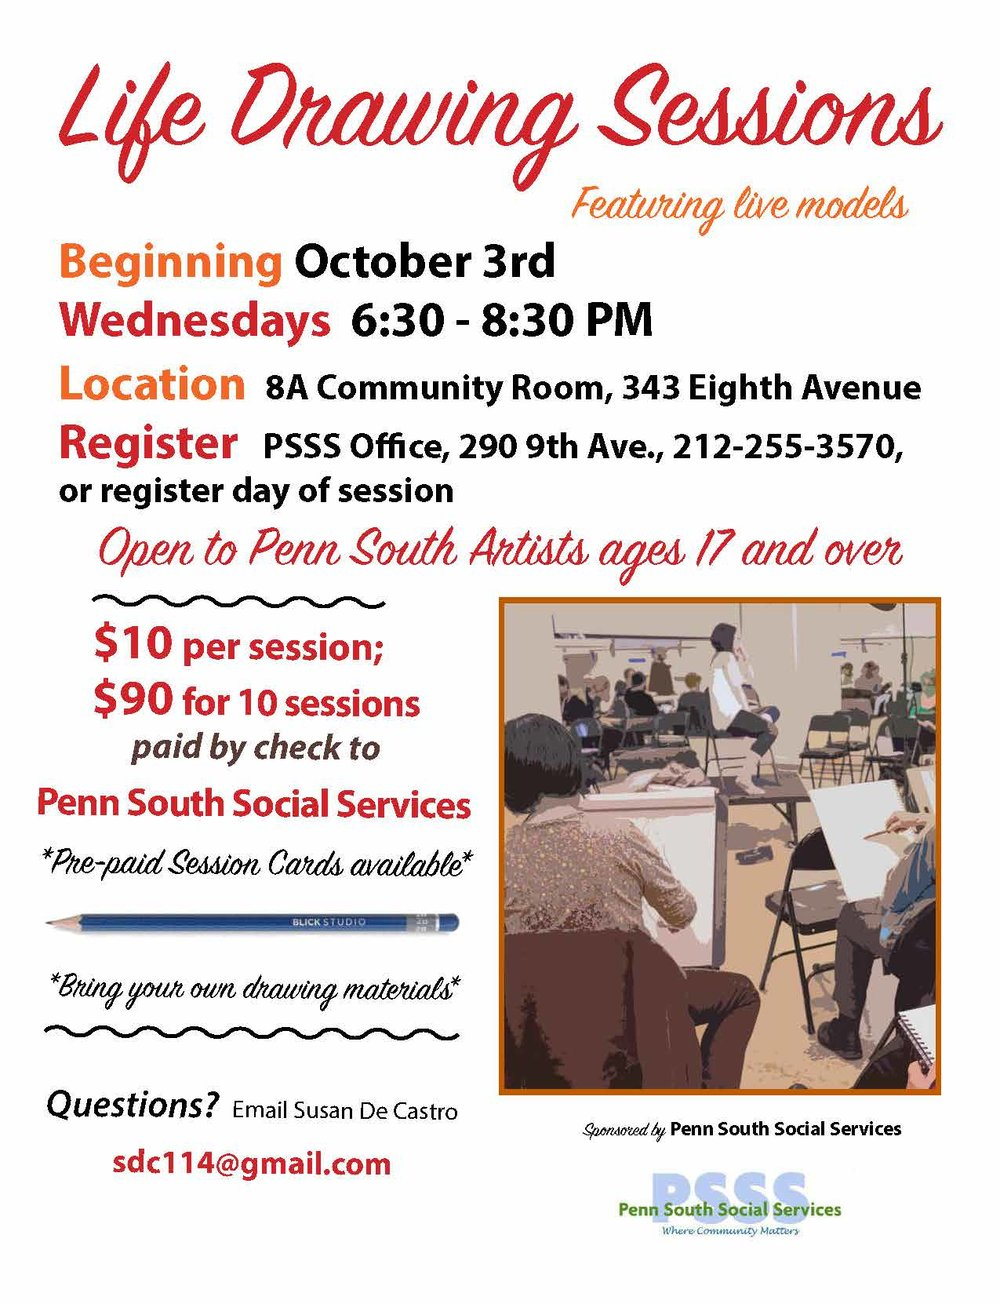 PSSS DRAWING REV SESSIONS FLYER FALL 2018.jpg